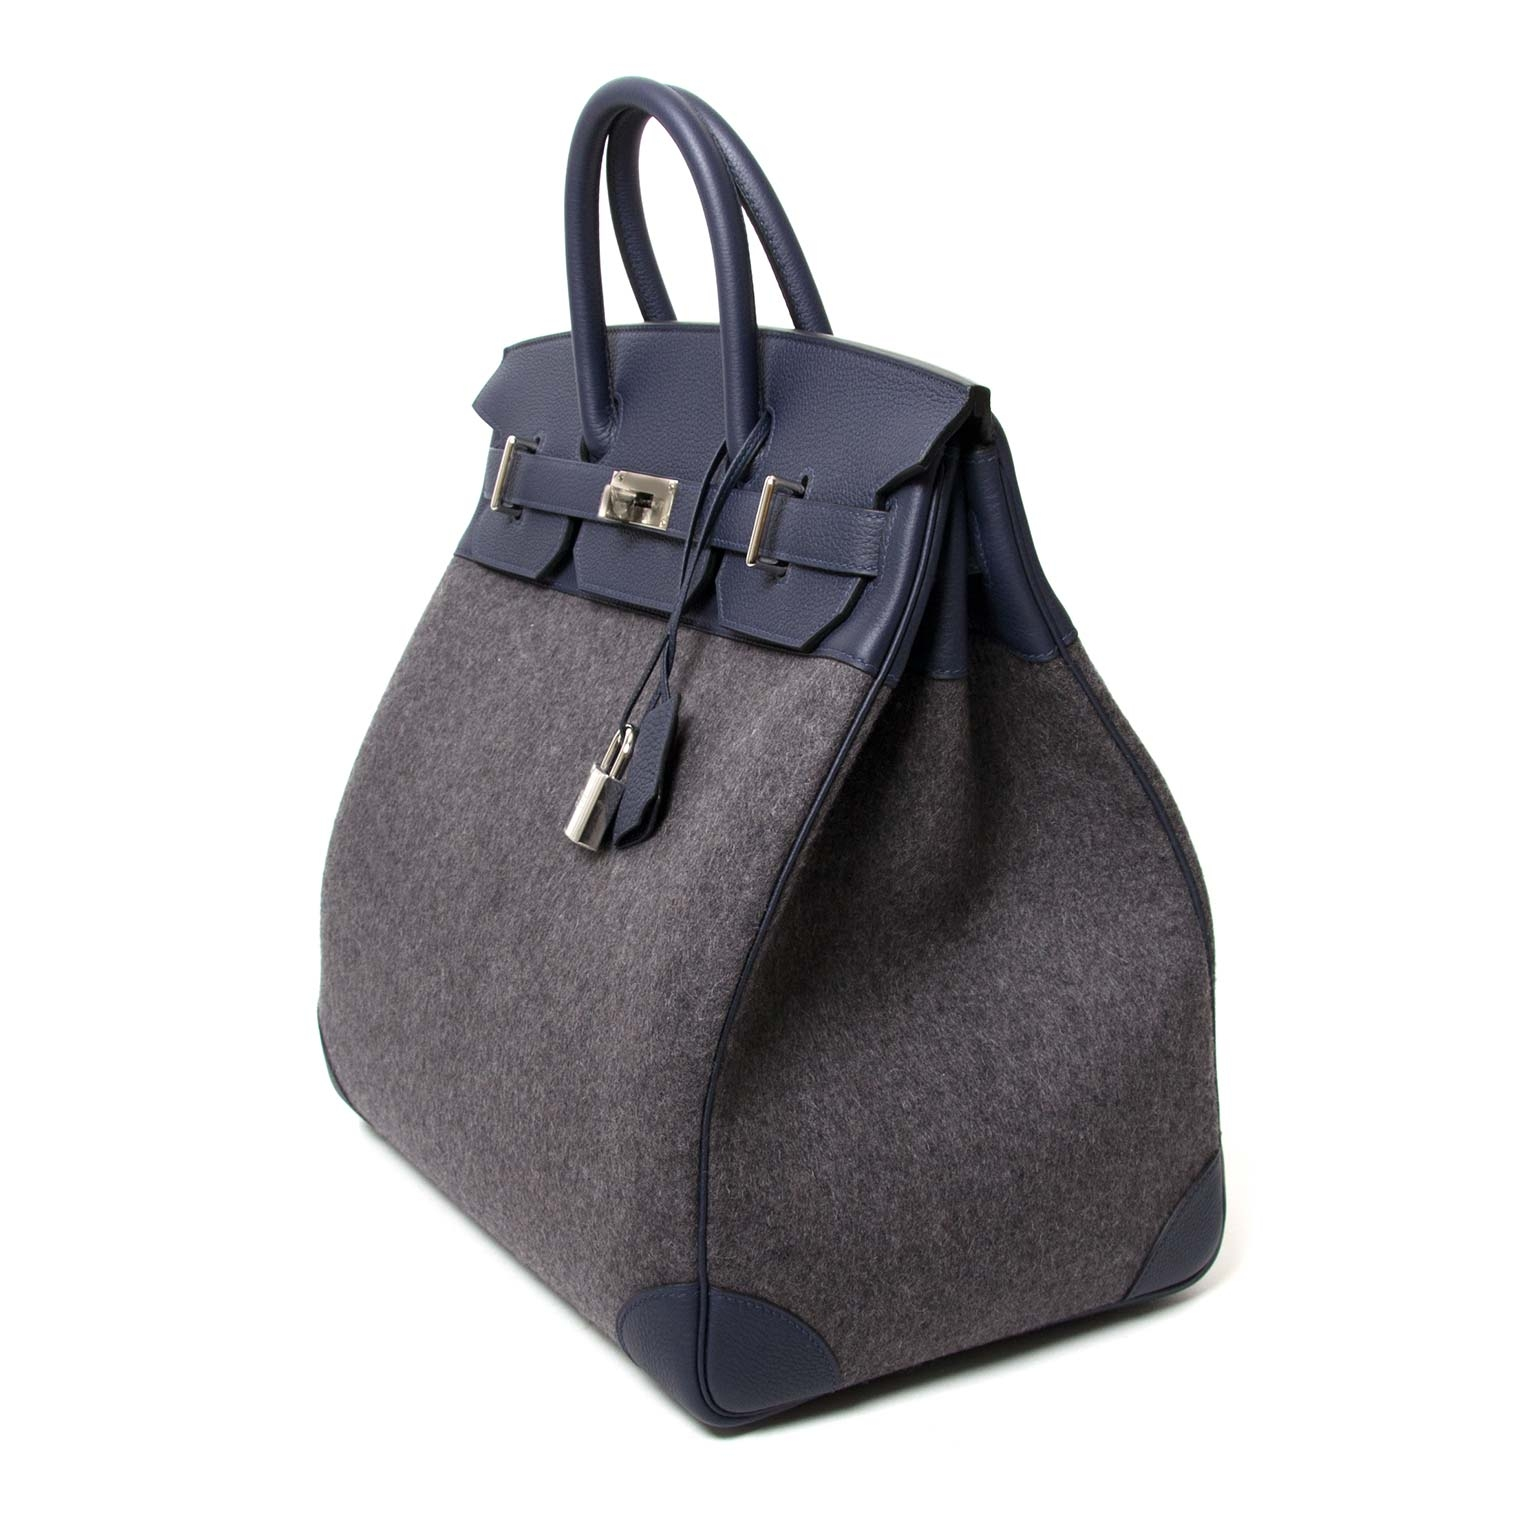 Labellov Buy Brand New Hermes Birkin Bags Online ○ Buy and Sell ... 9018587e7f484